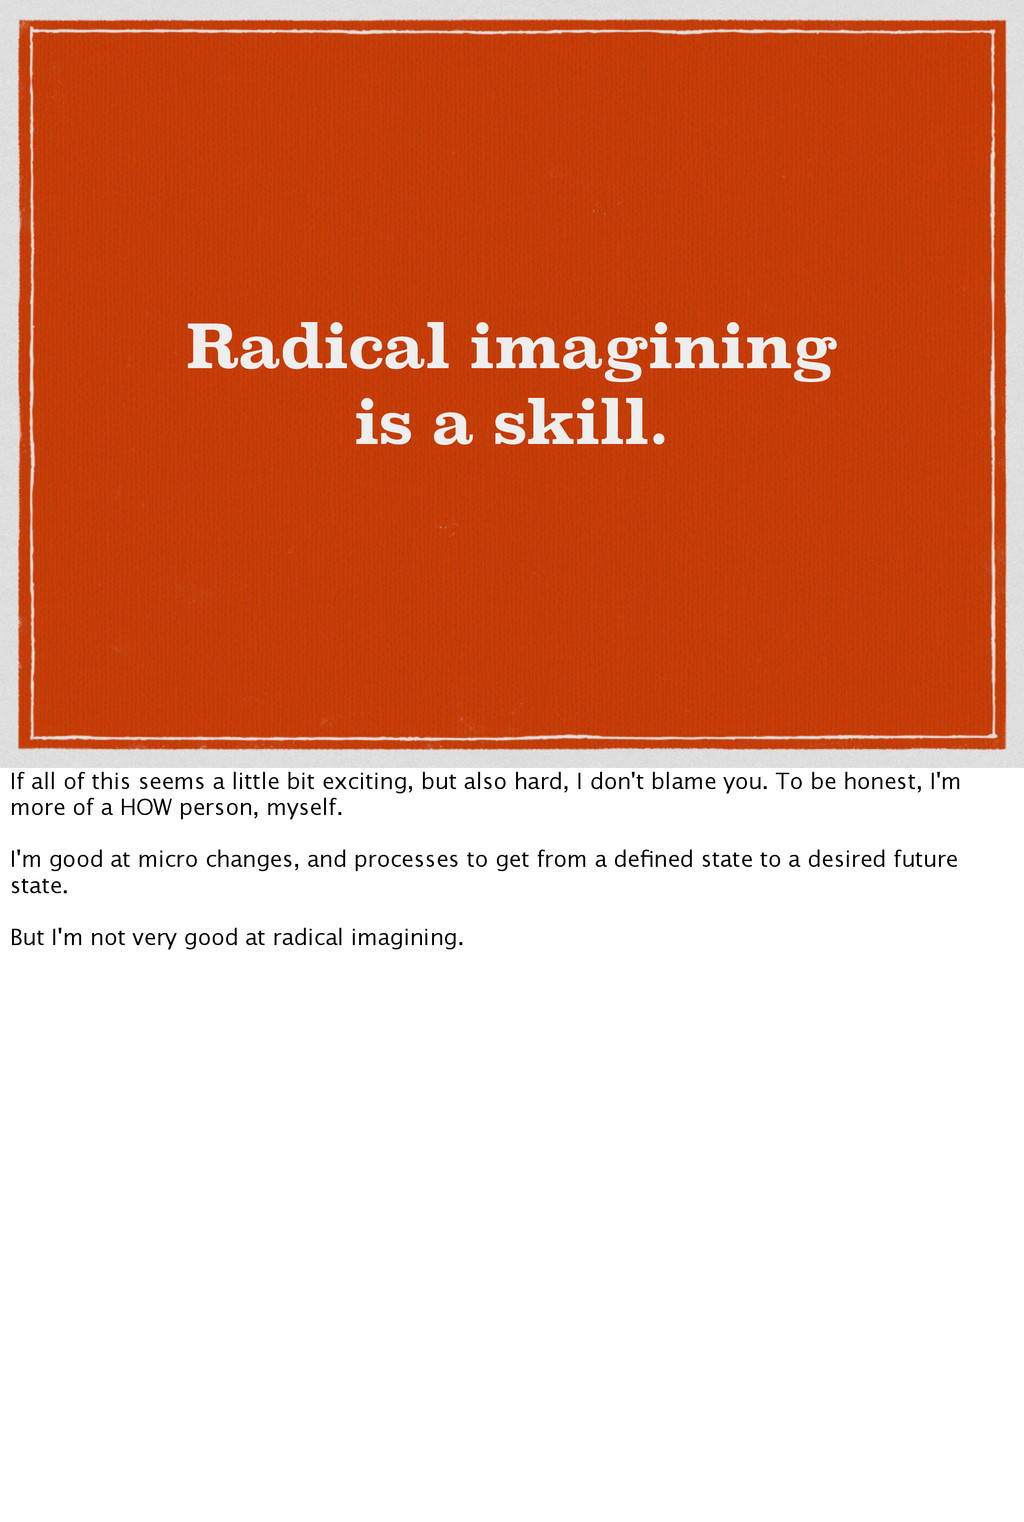 Radical imagining is a skill. If all of this se...